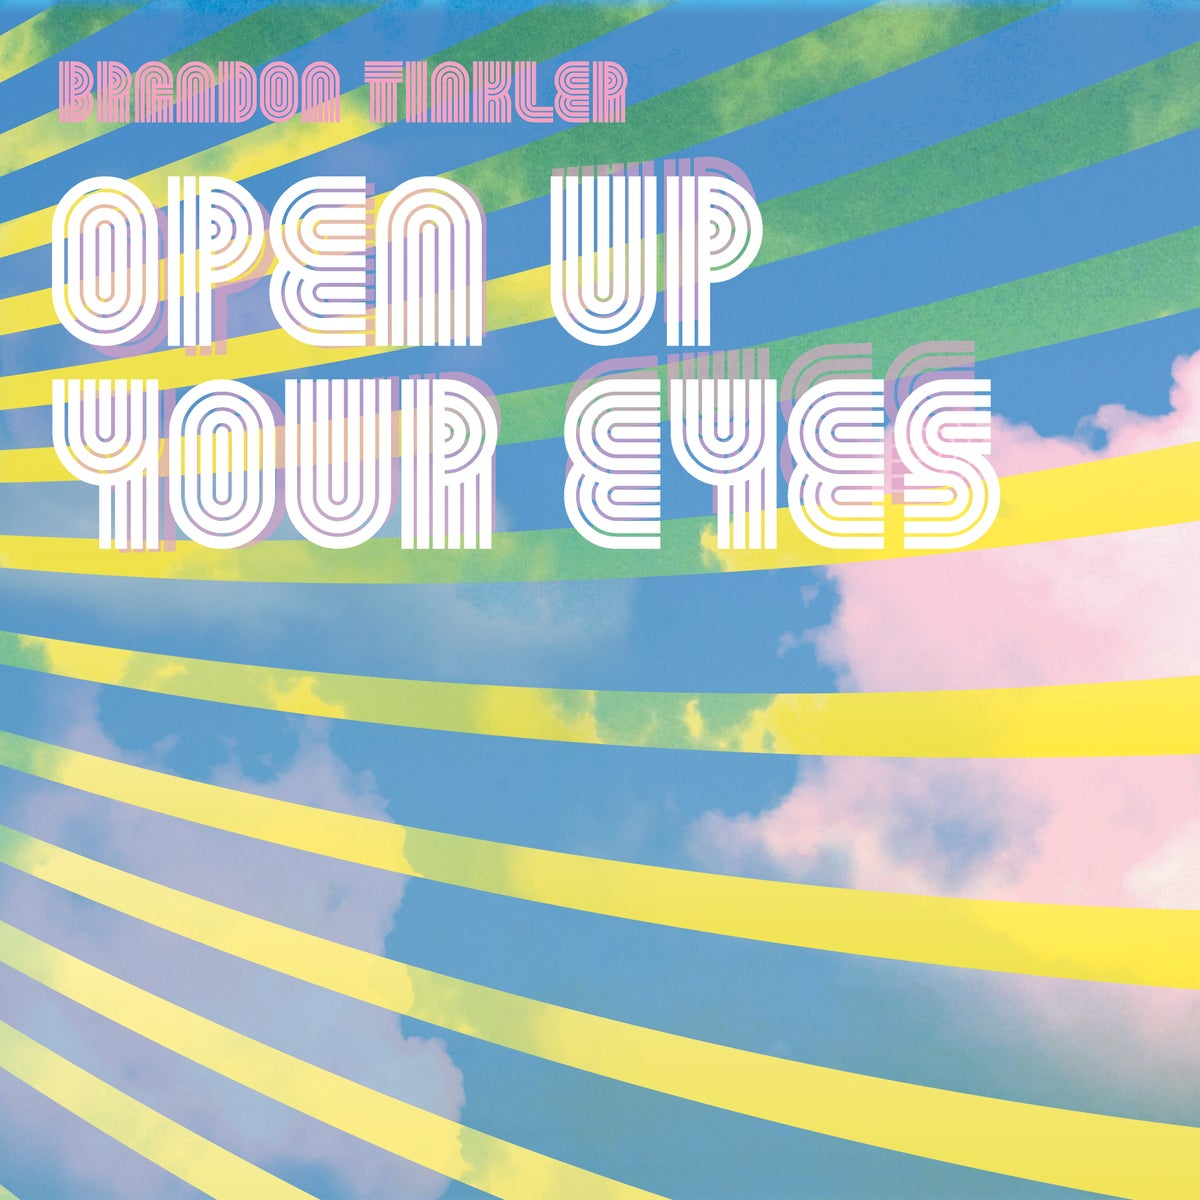 Image of Brandon Tinkler - Open Up Your Eyes